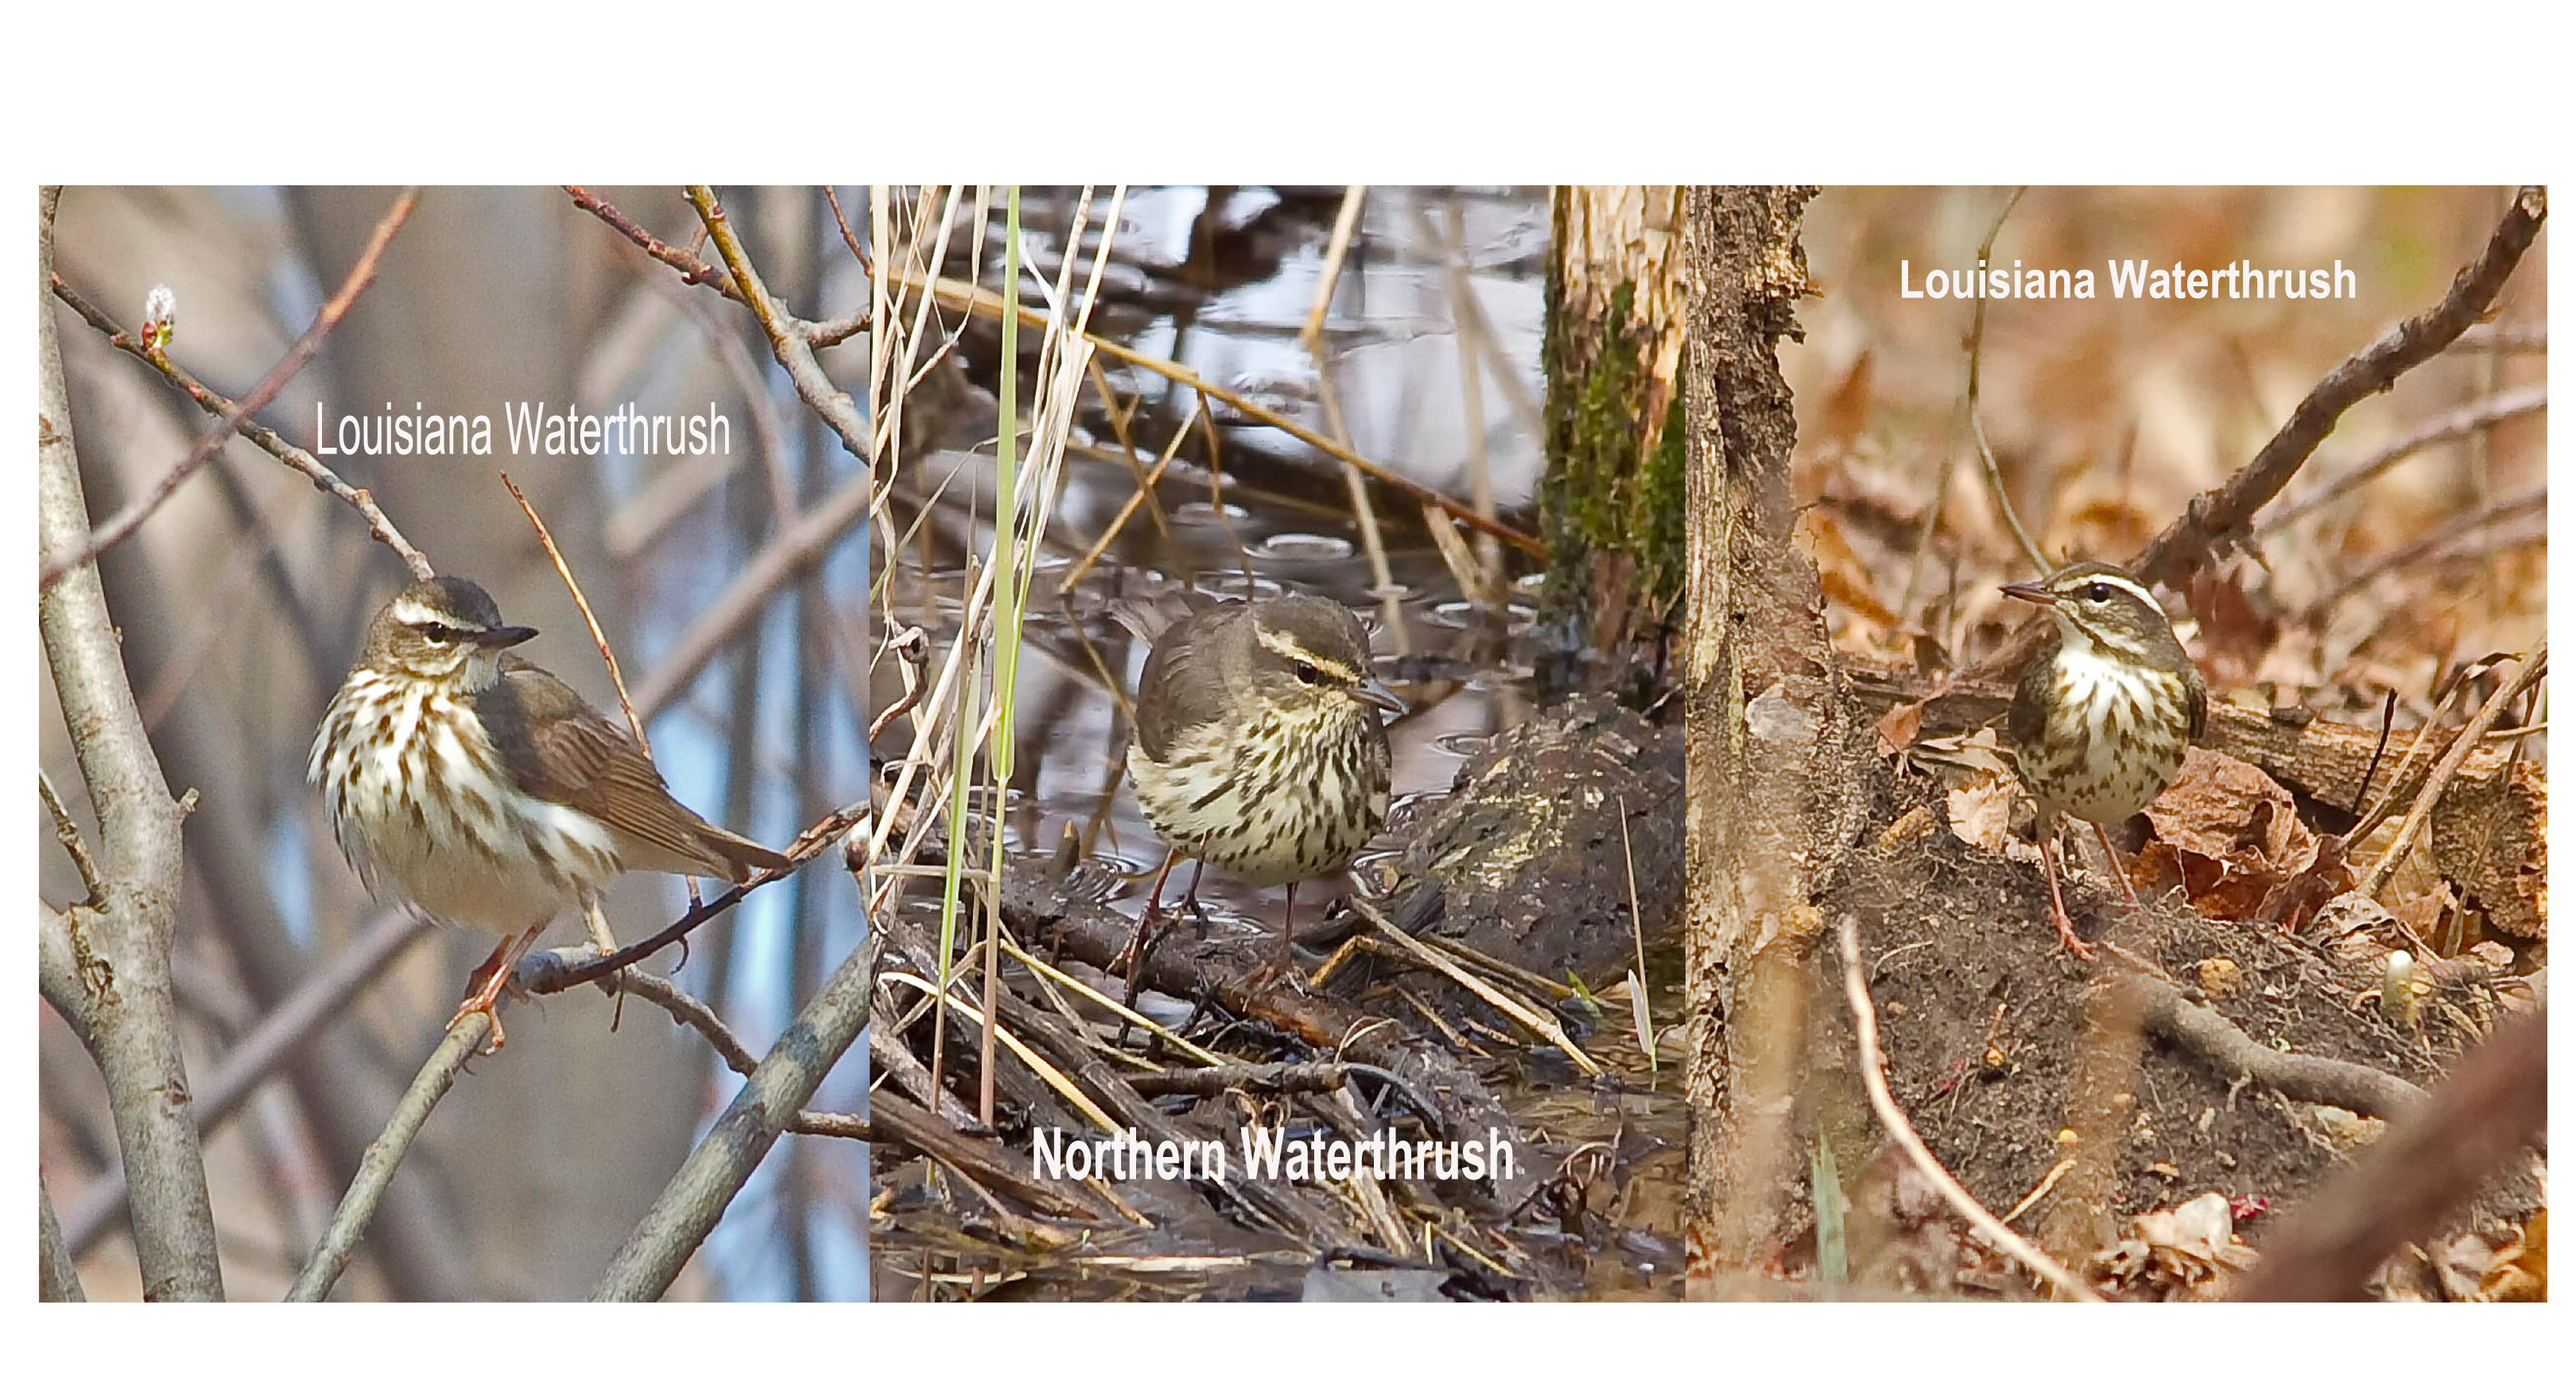 Northern and Louisiana Waterthrush comparison